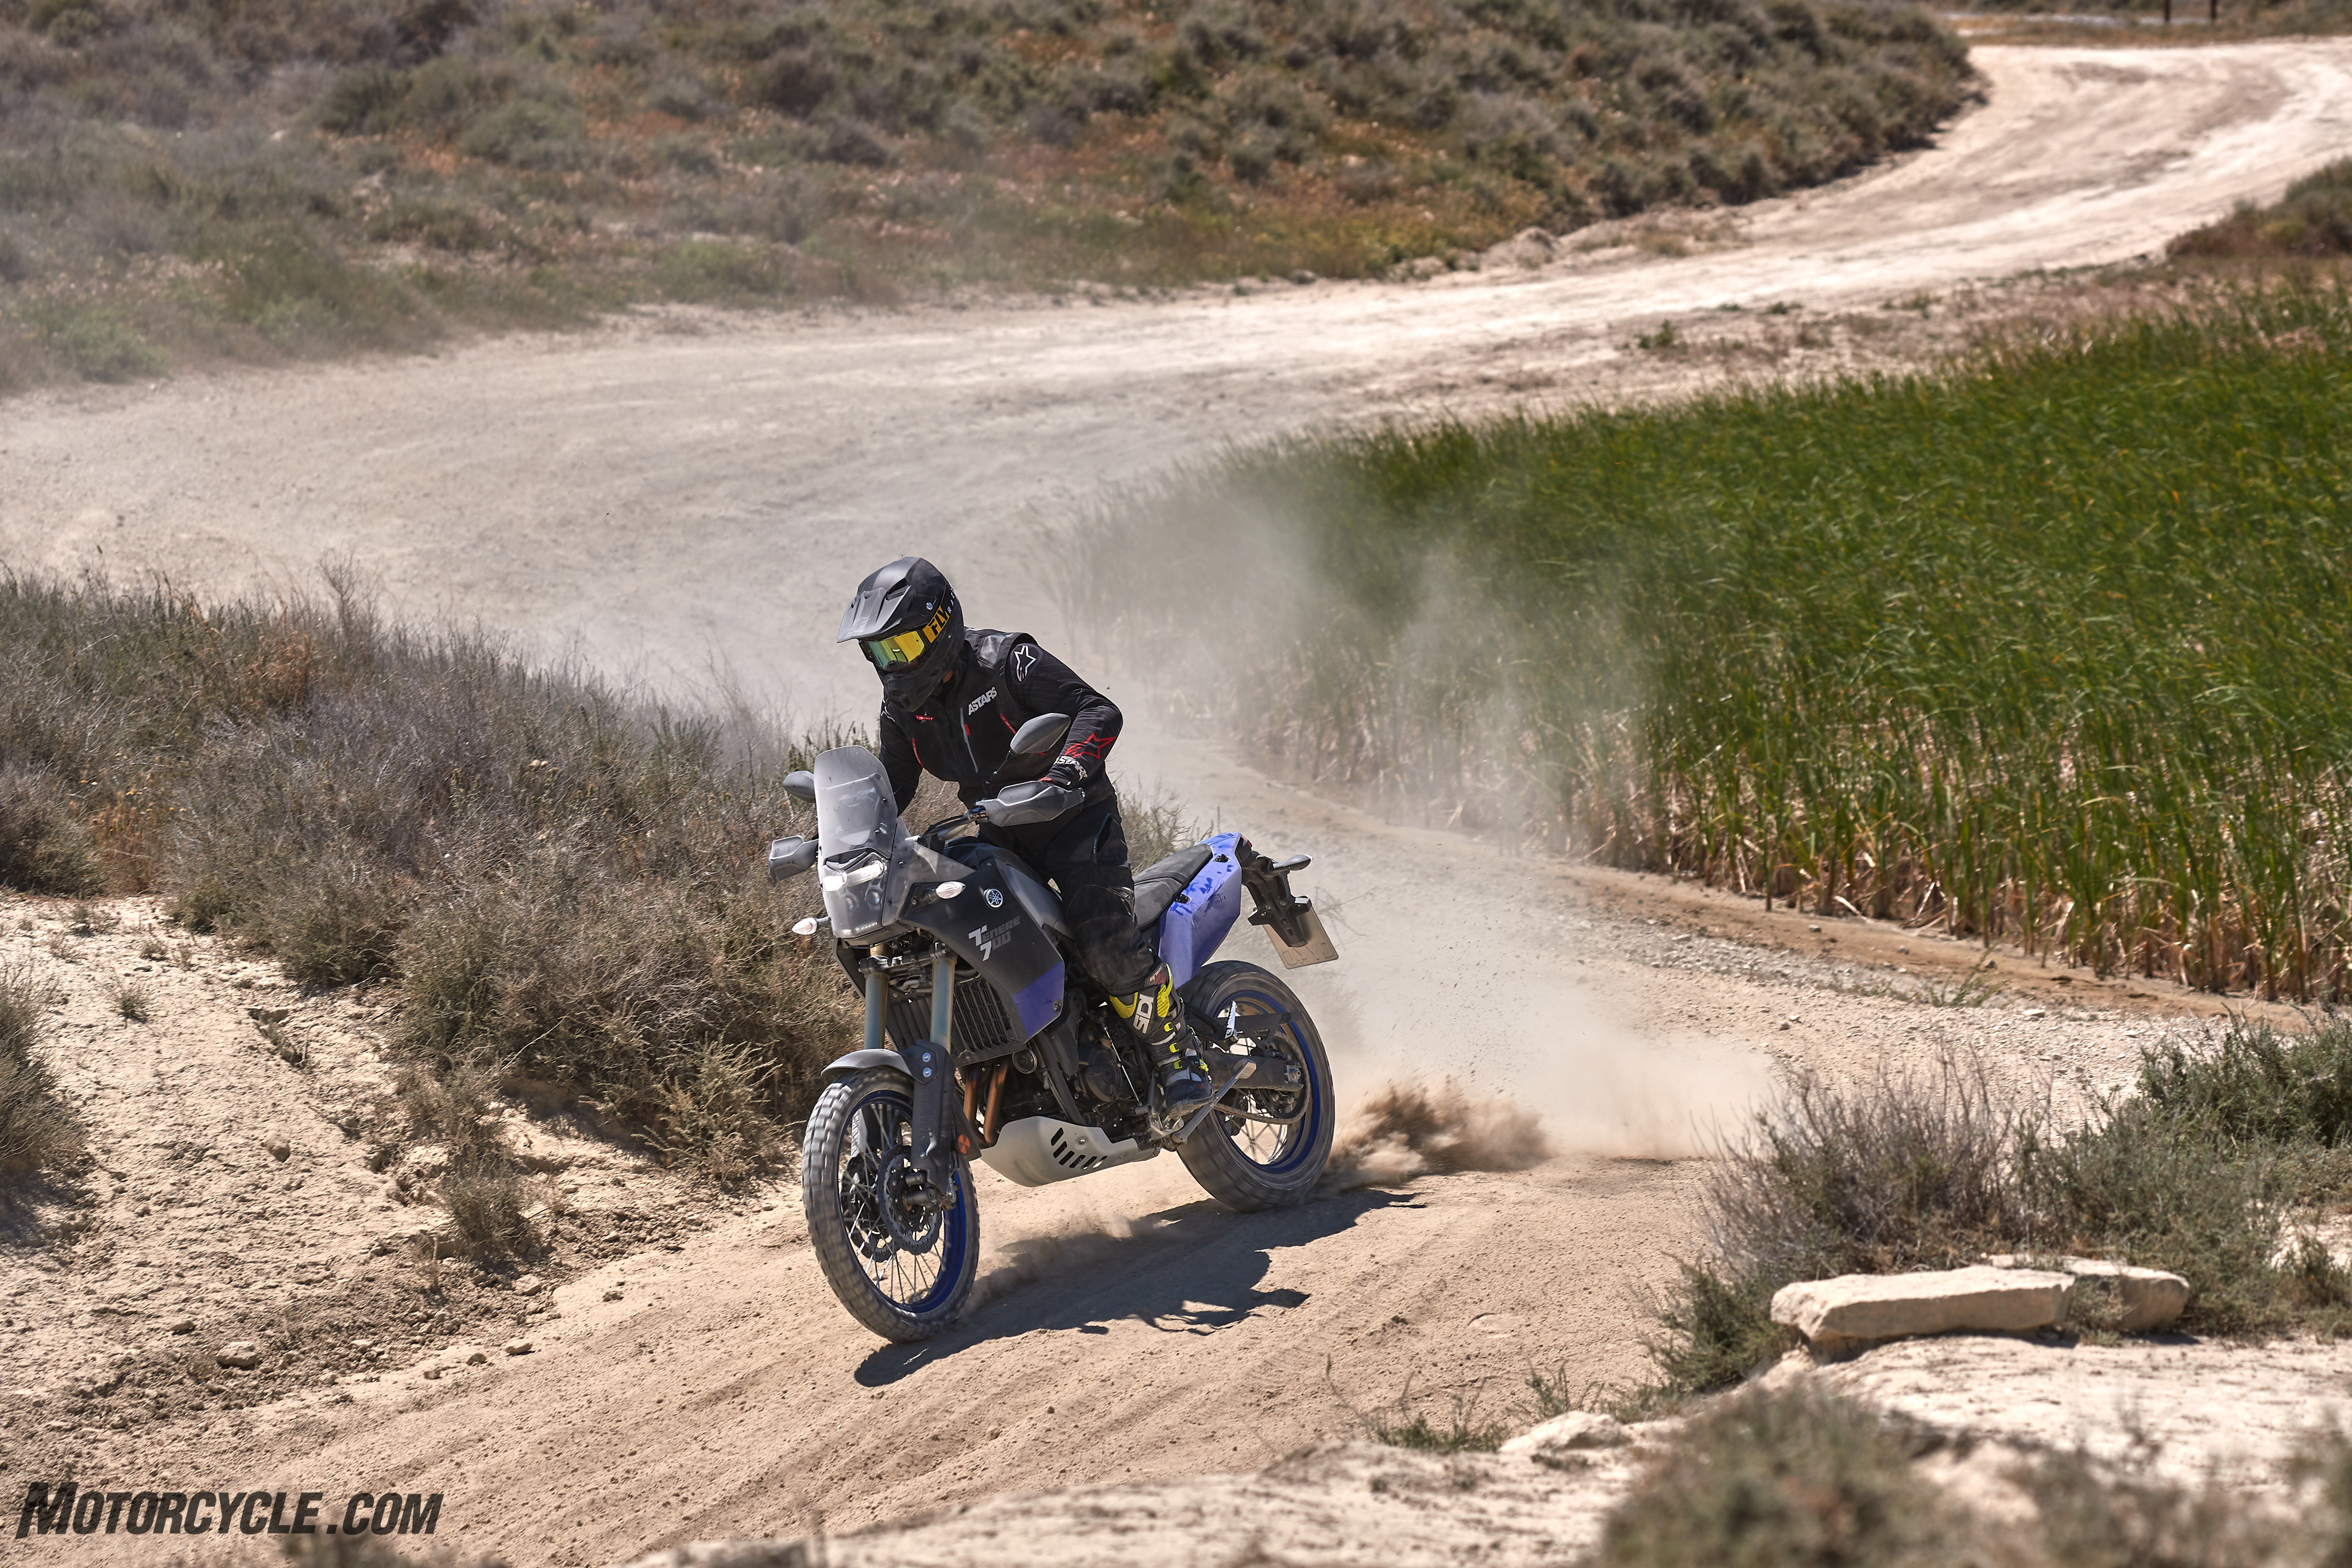 2020 Yamaha Tenere 700 Review – First Ride